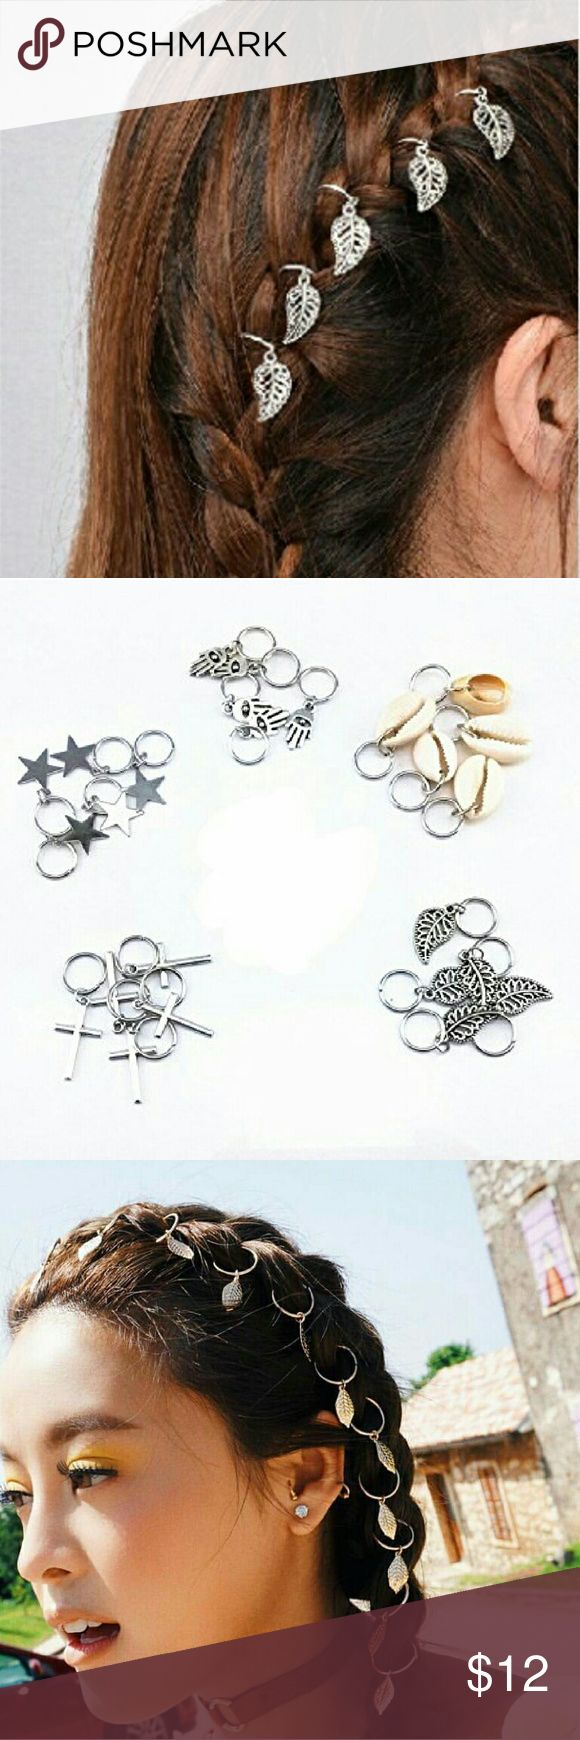 "Hair Bling! Braid Rings for Hair ""Piercing"" Hot new trend!  These silvertone hair ring ornaments are perfect for sporting this new look.  Use in braids, or buns or other styles. Size 9-20 mm depending on attachments. 5 rings in each pack. Accessories Hair Accessories"